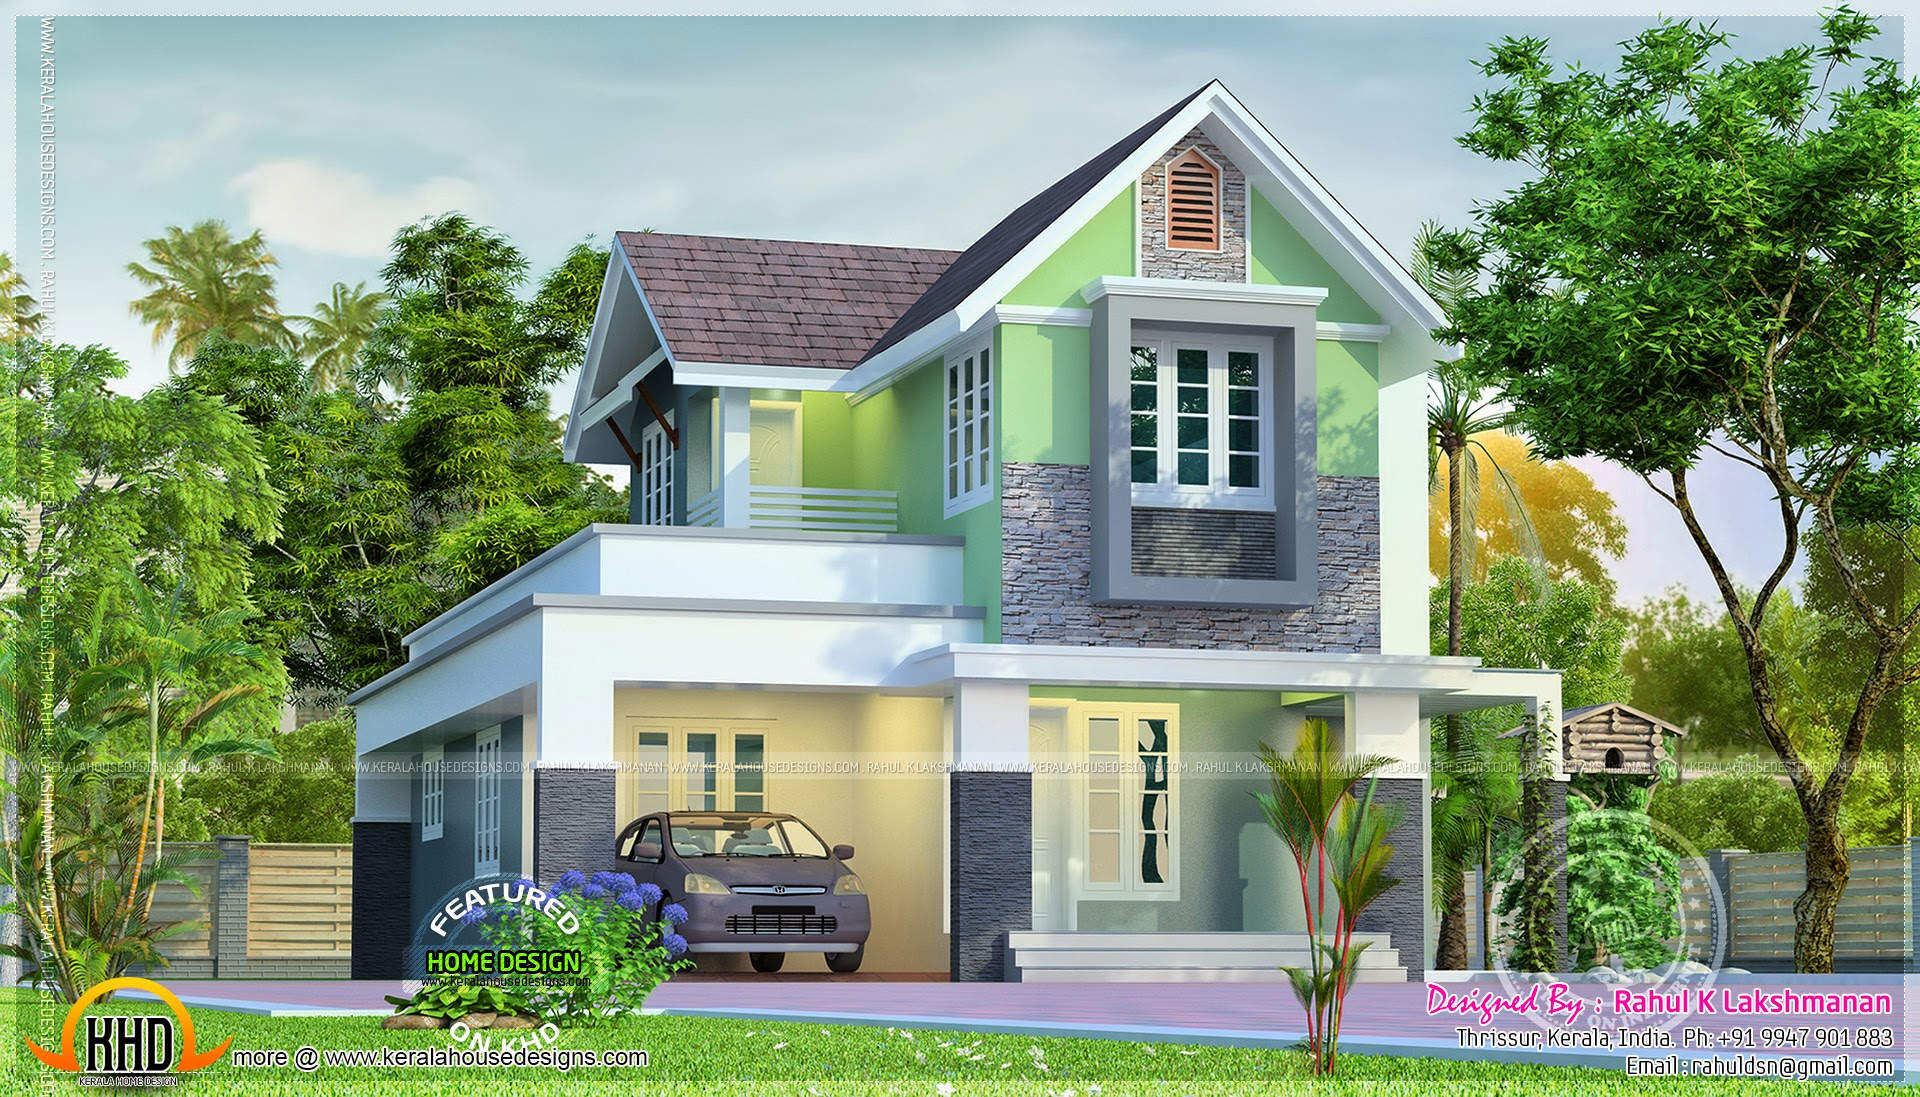 Cute little house plan kerala home design and floor plans House and home designs